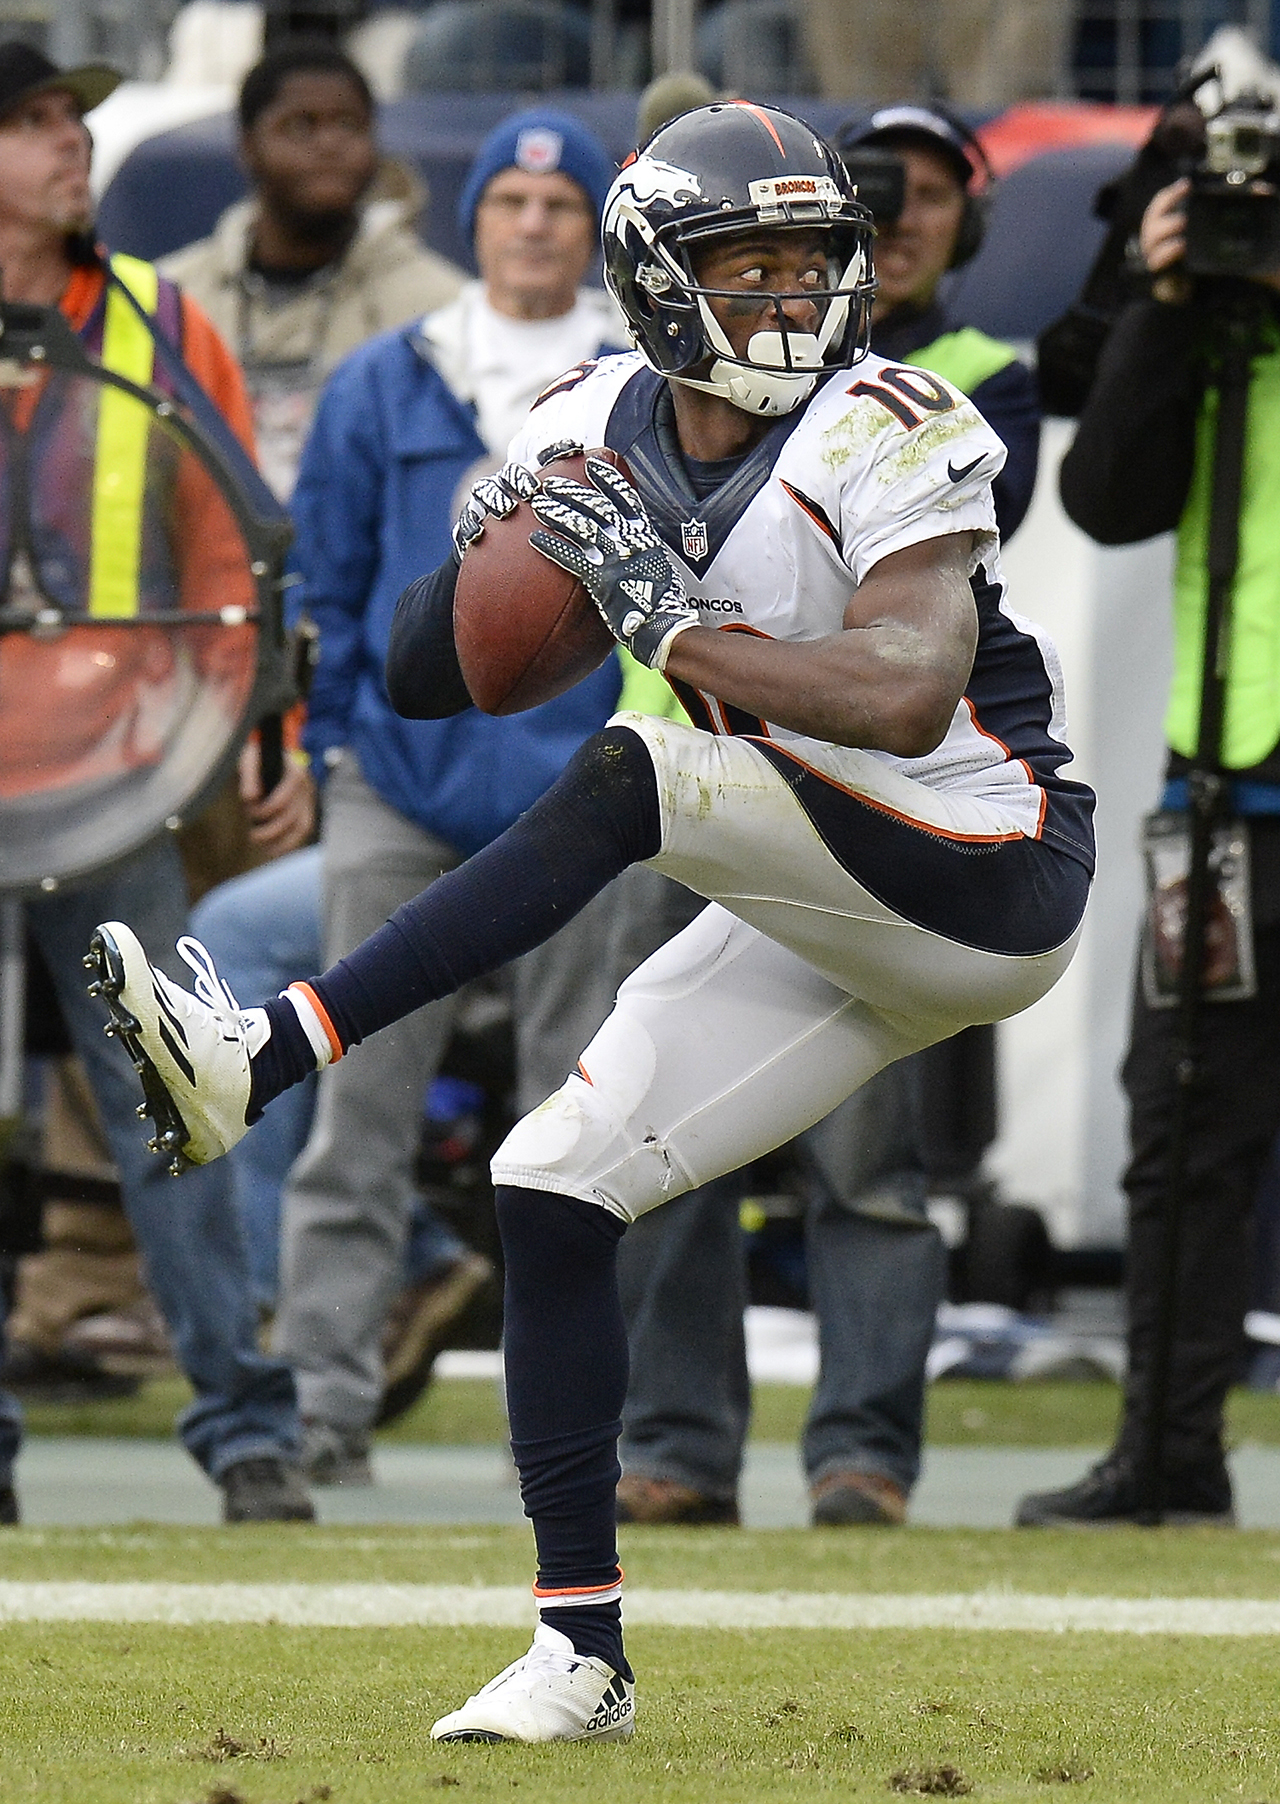 Emmanuel Sanders showed off his fastball after scoring and the